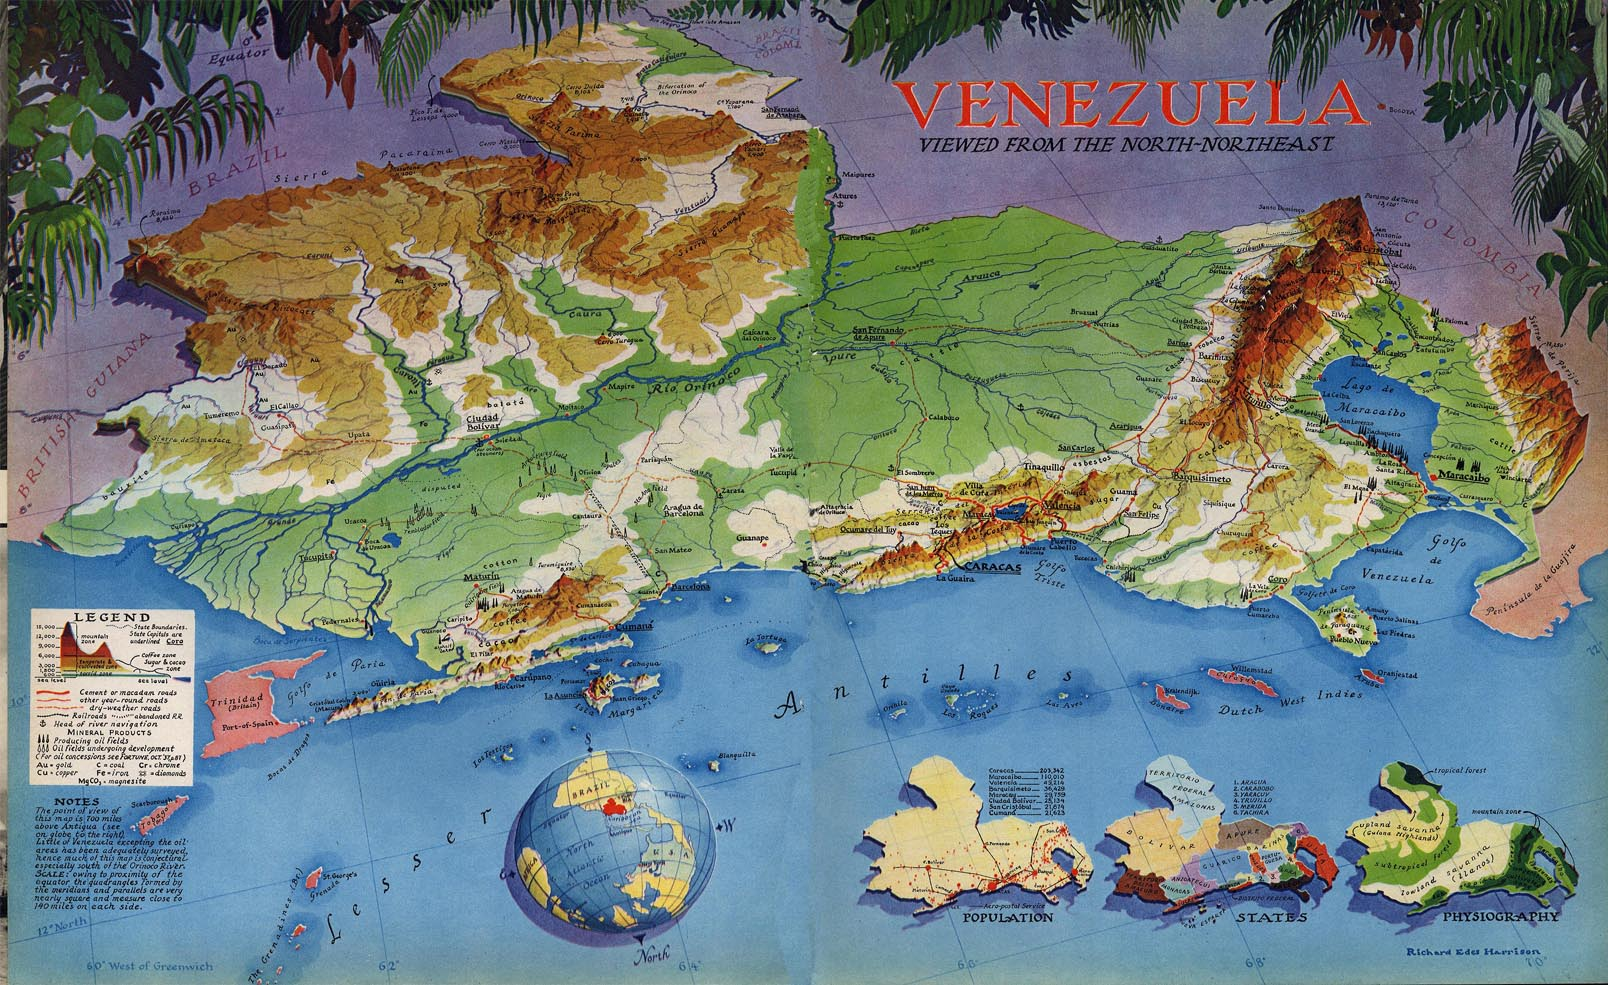 Richard Eades Harrison - Venezuela Map